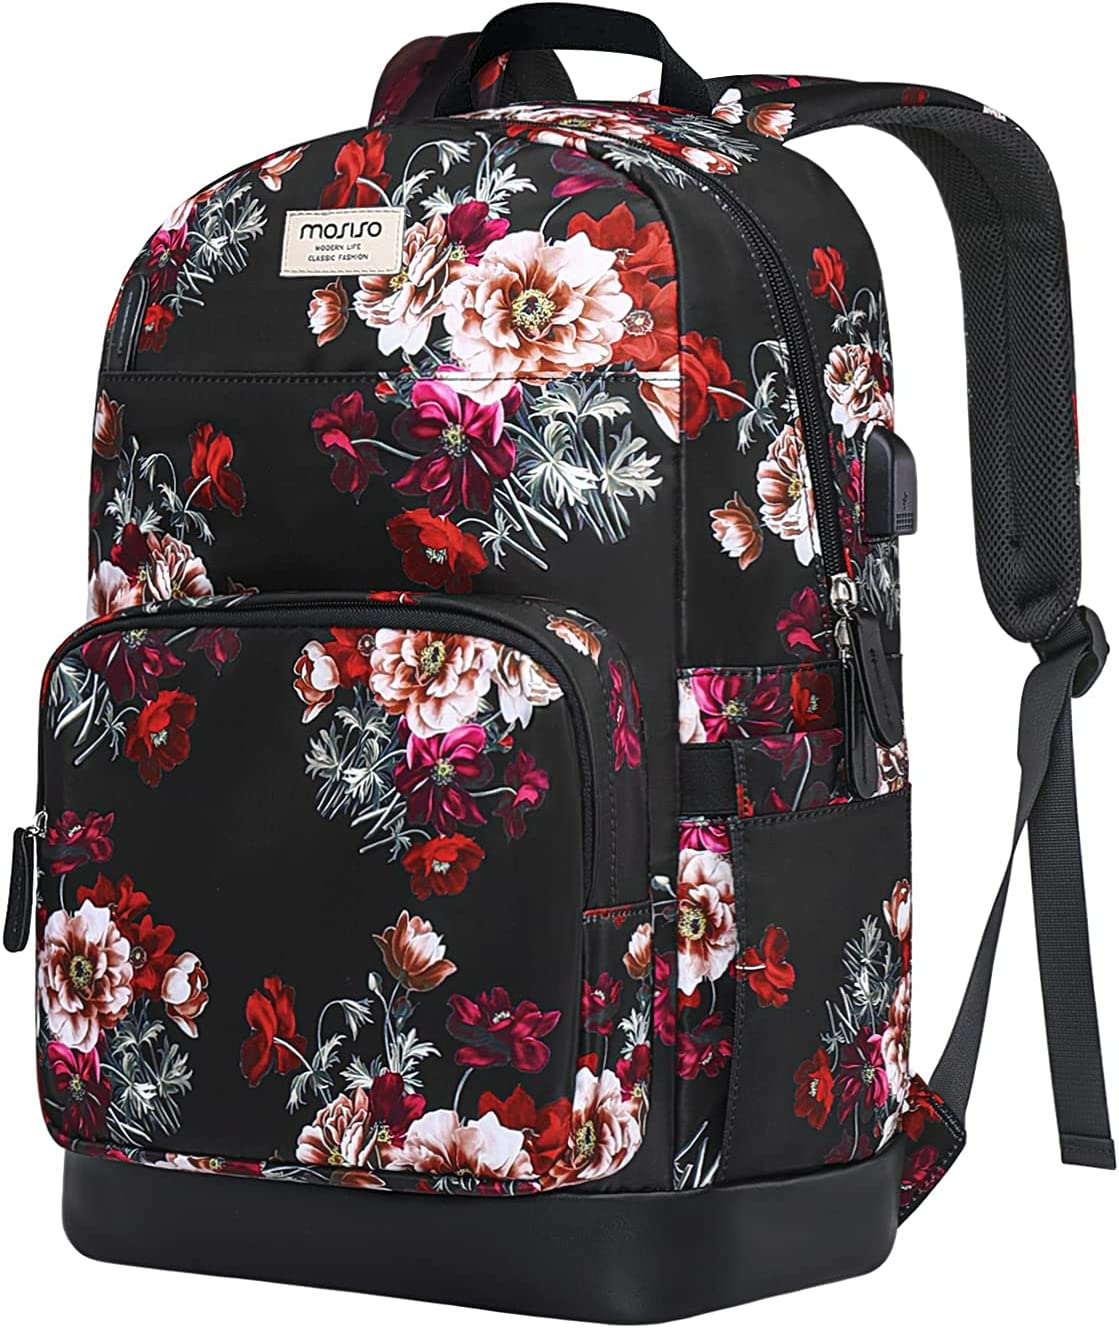 MOSISO 15.6-16 inch Laptop Backpack for Women Girls, Polyester Anti-Theft Stylish Casual Daypack Bag with Luggage Strap & USB Charging Port, Cottonrose Travel Business College School Bookbag, Black